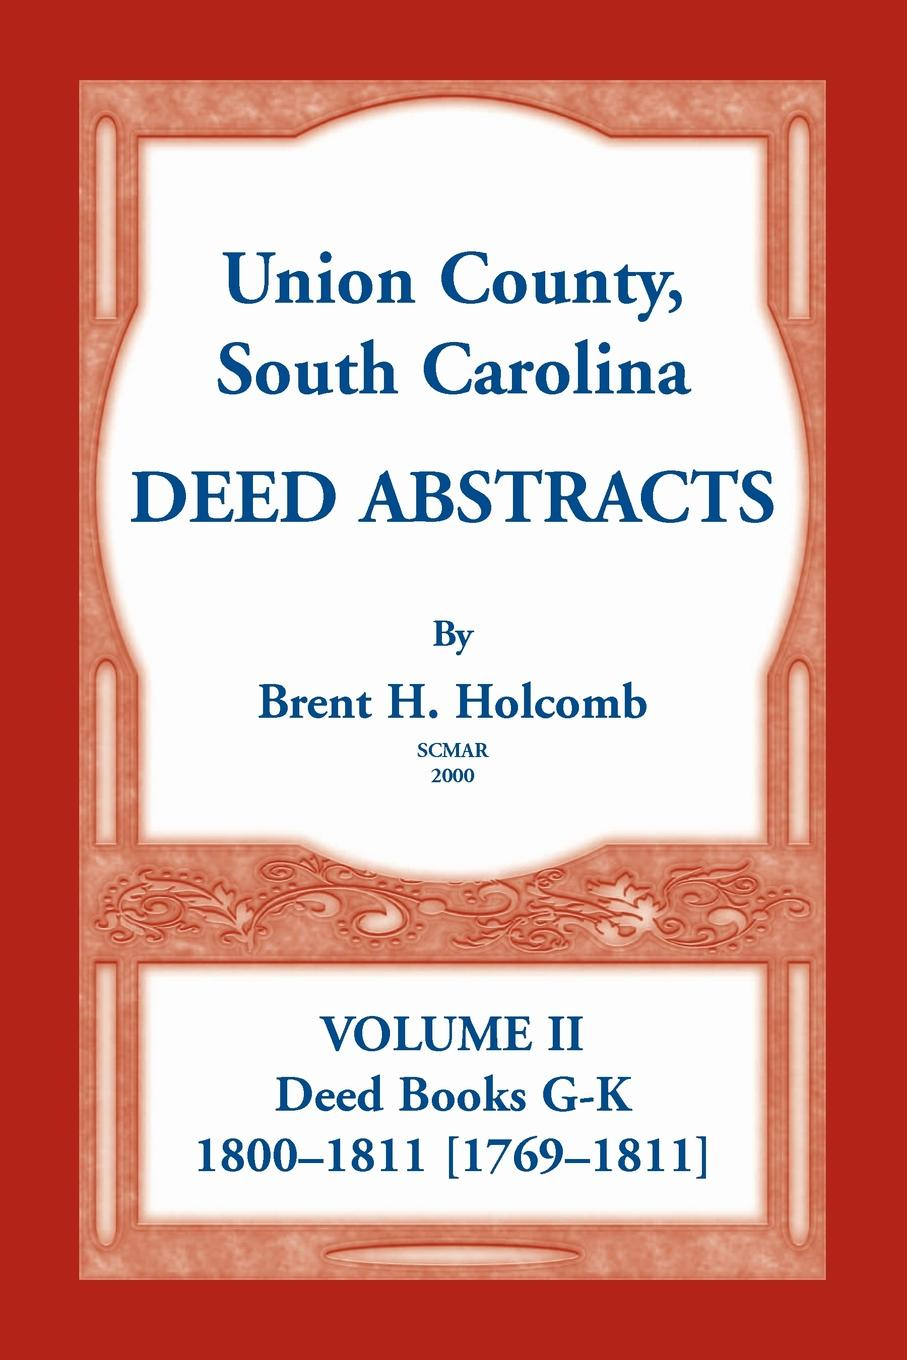 Brent H. Holcomb Union County, South Carolina Deed Abstracts, Volume II. Books G-K (1800-1811 .1769-1811.)